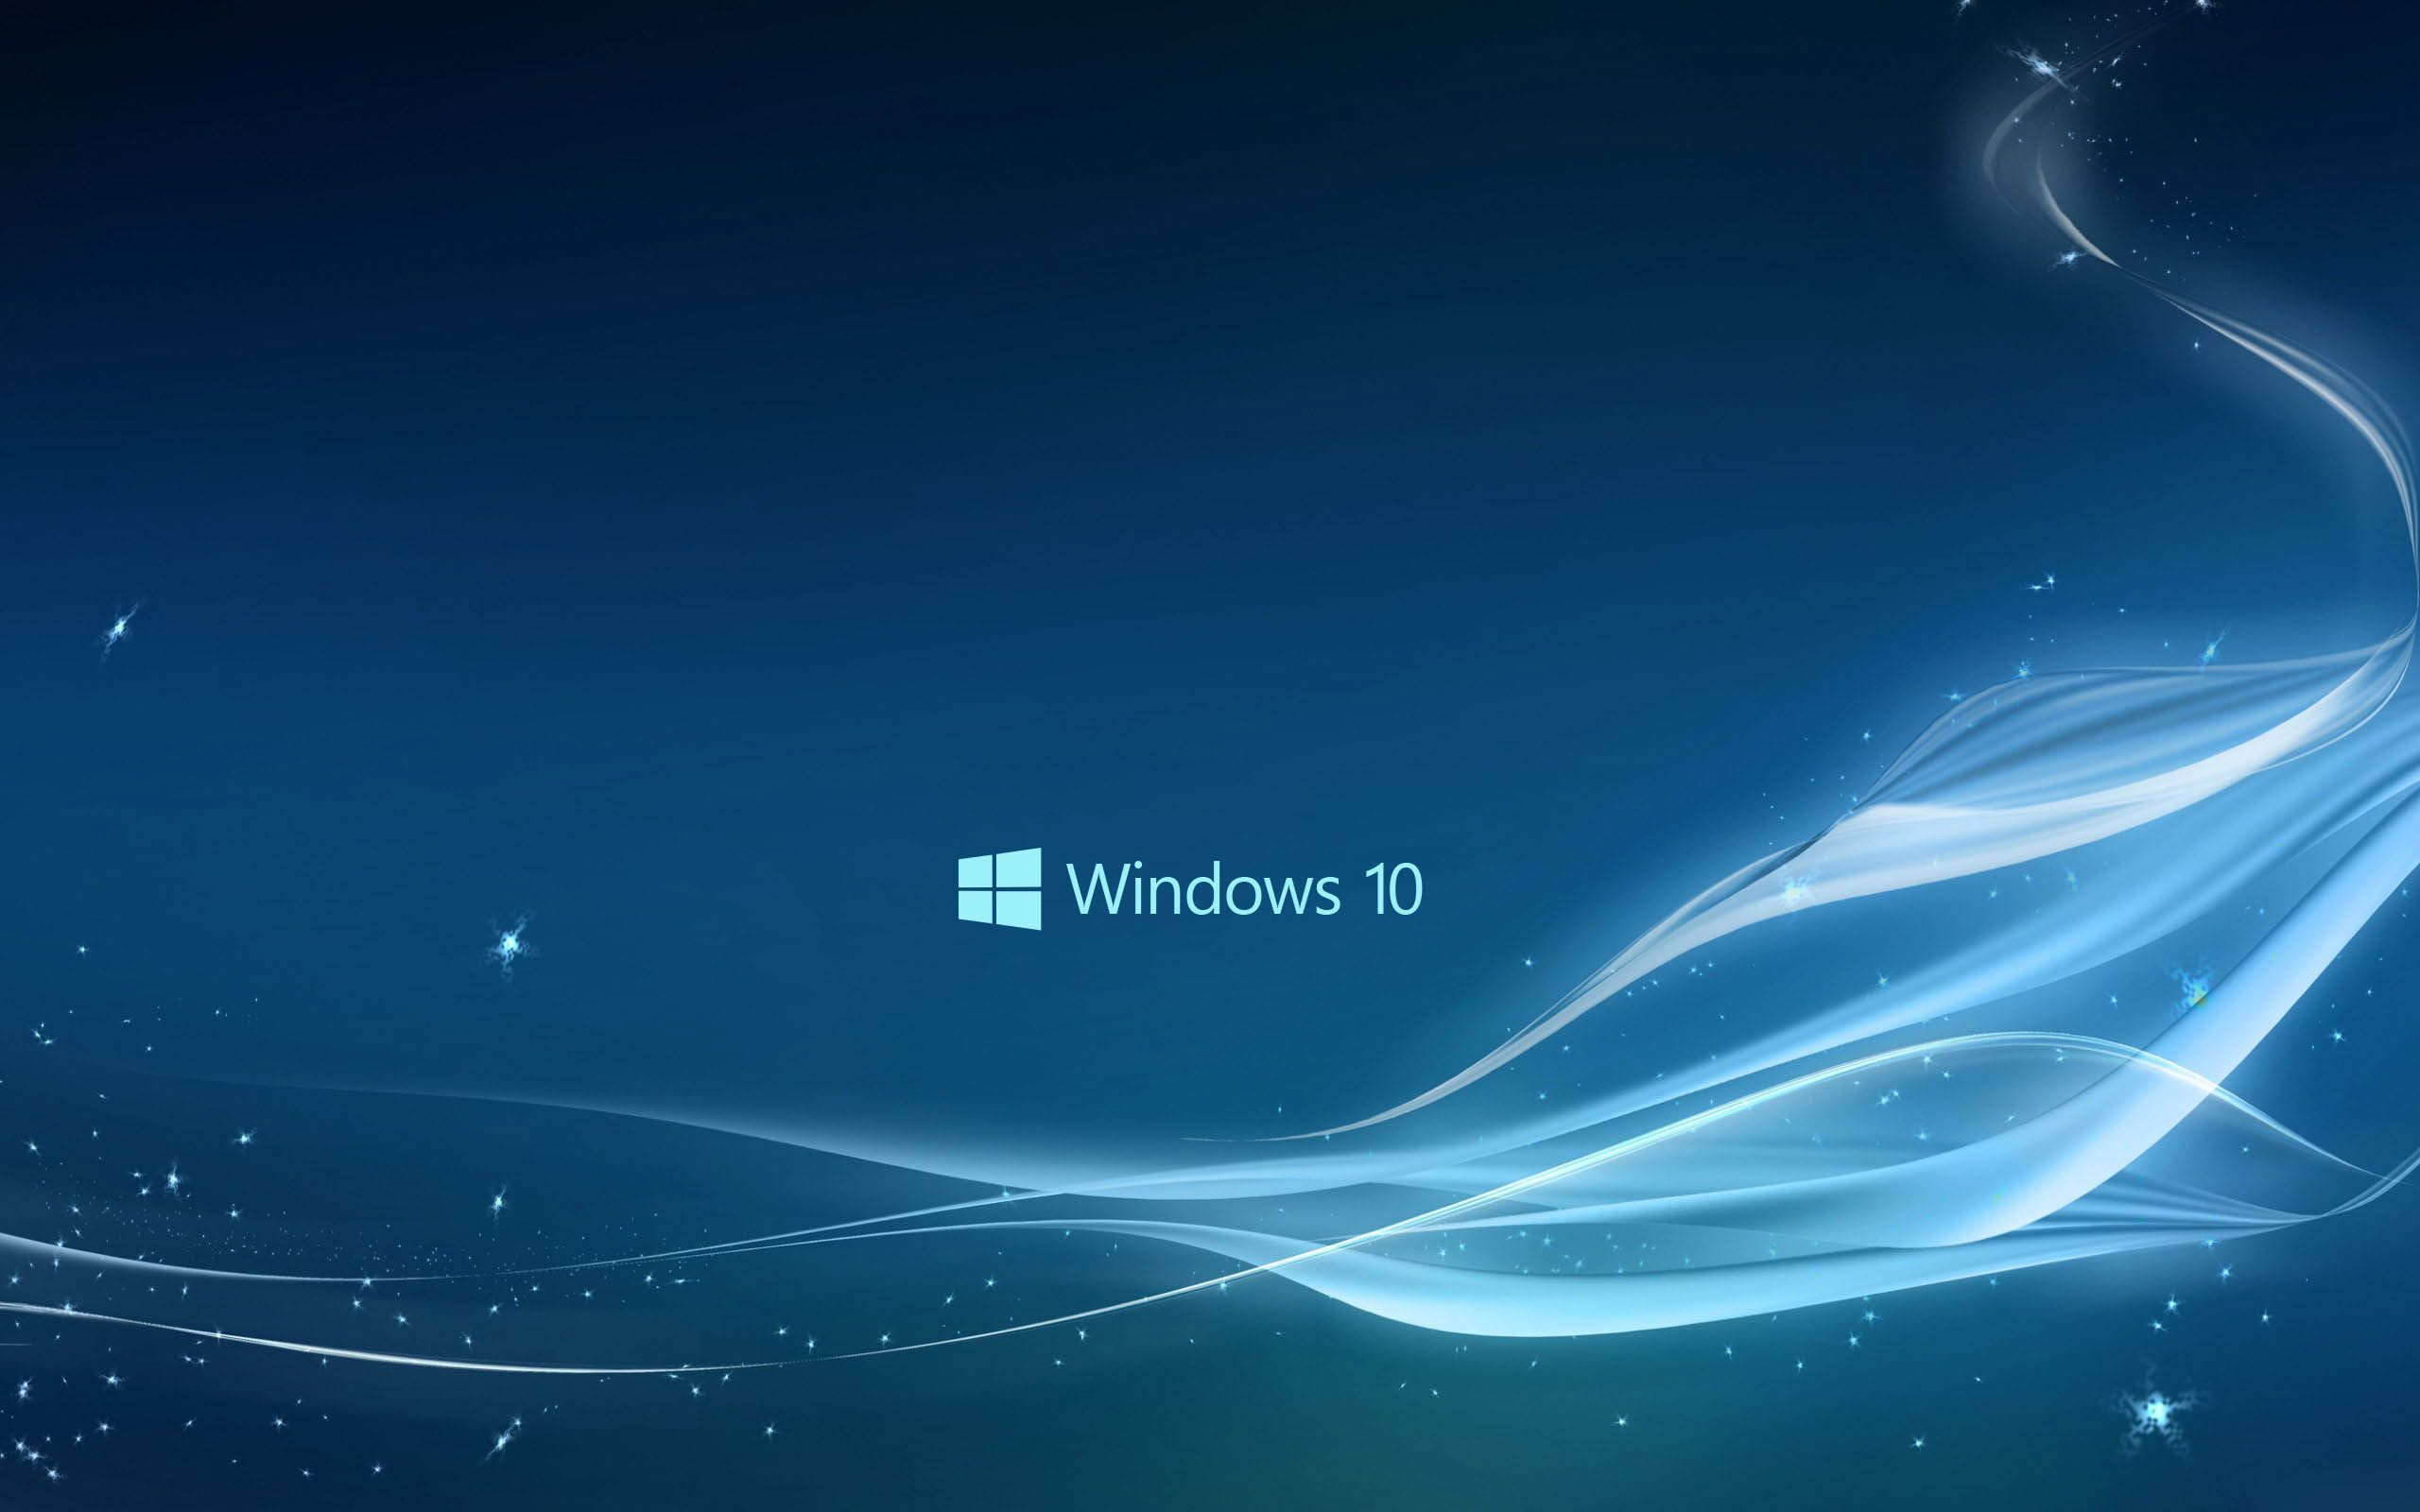 23 windows 10 wallpaper designs that will rock your world